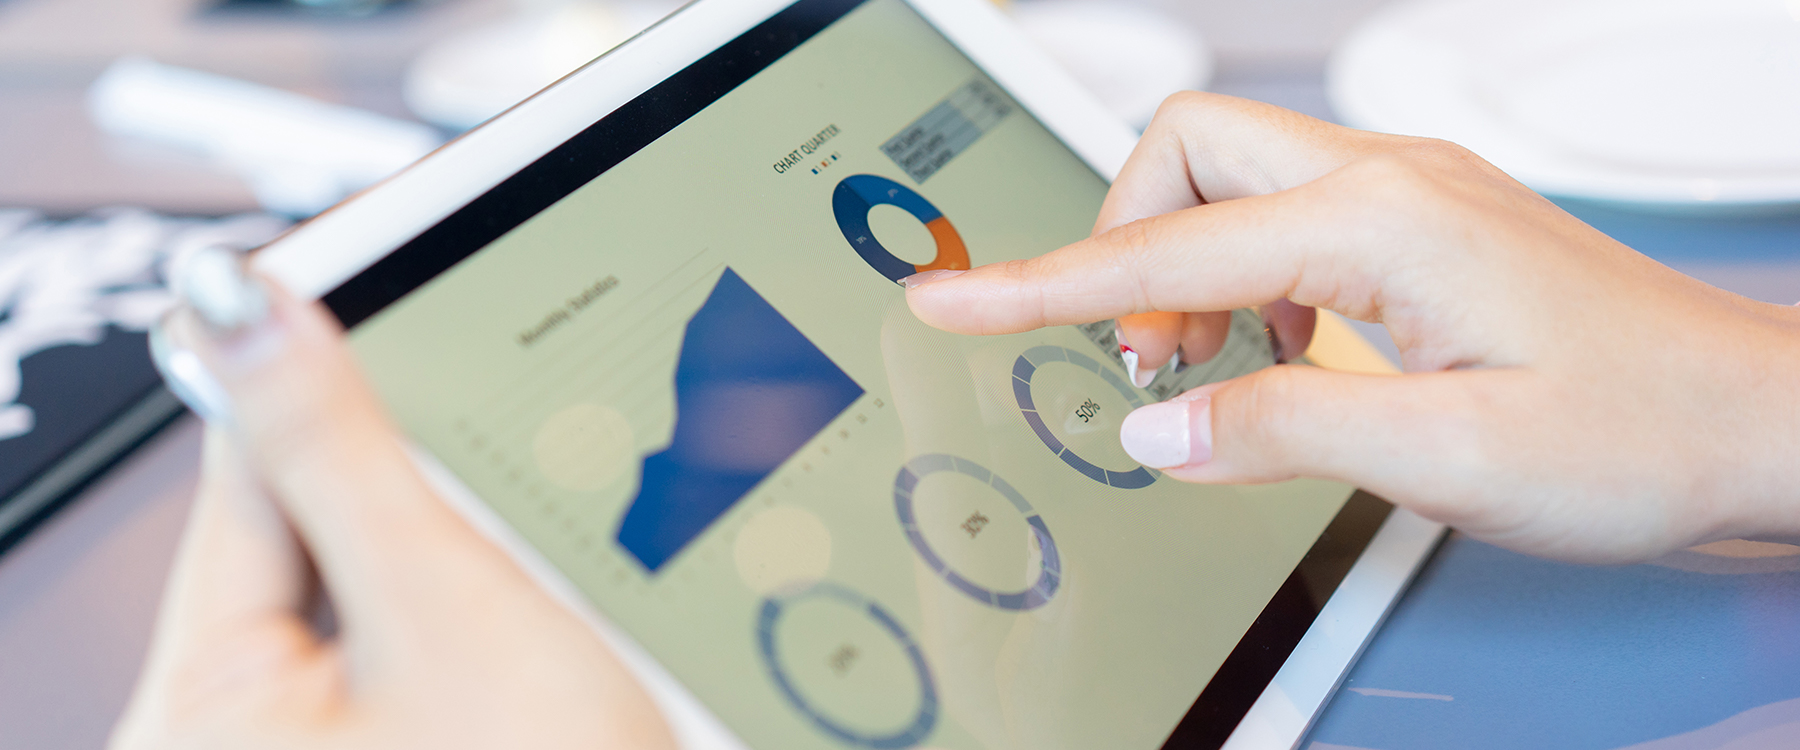 Woman clicking on graphs on ipad